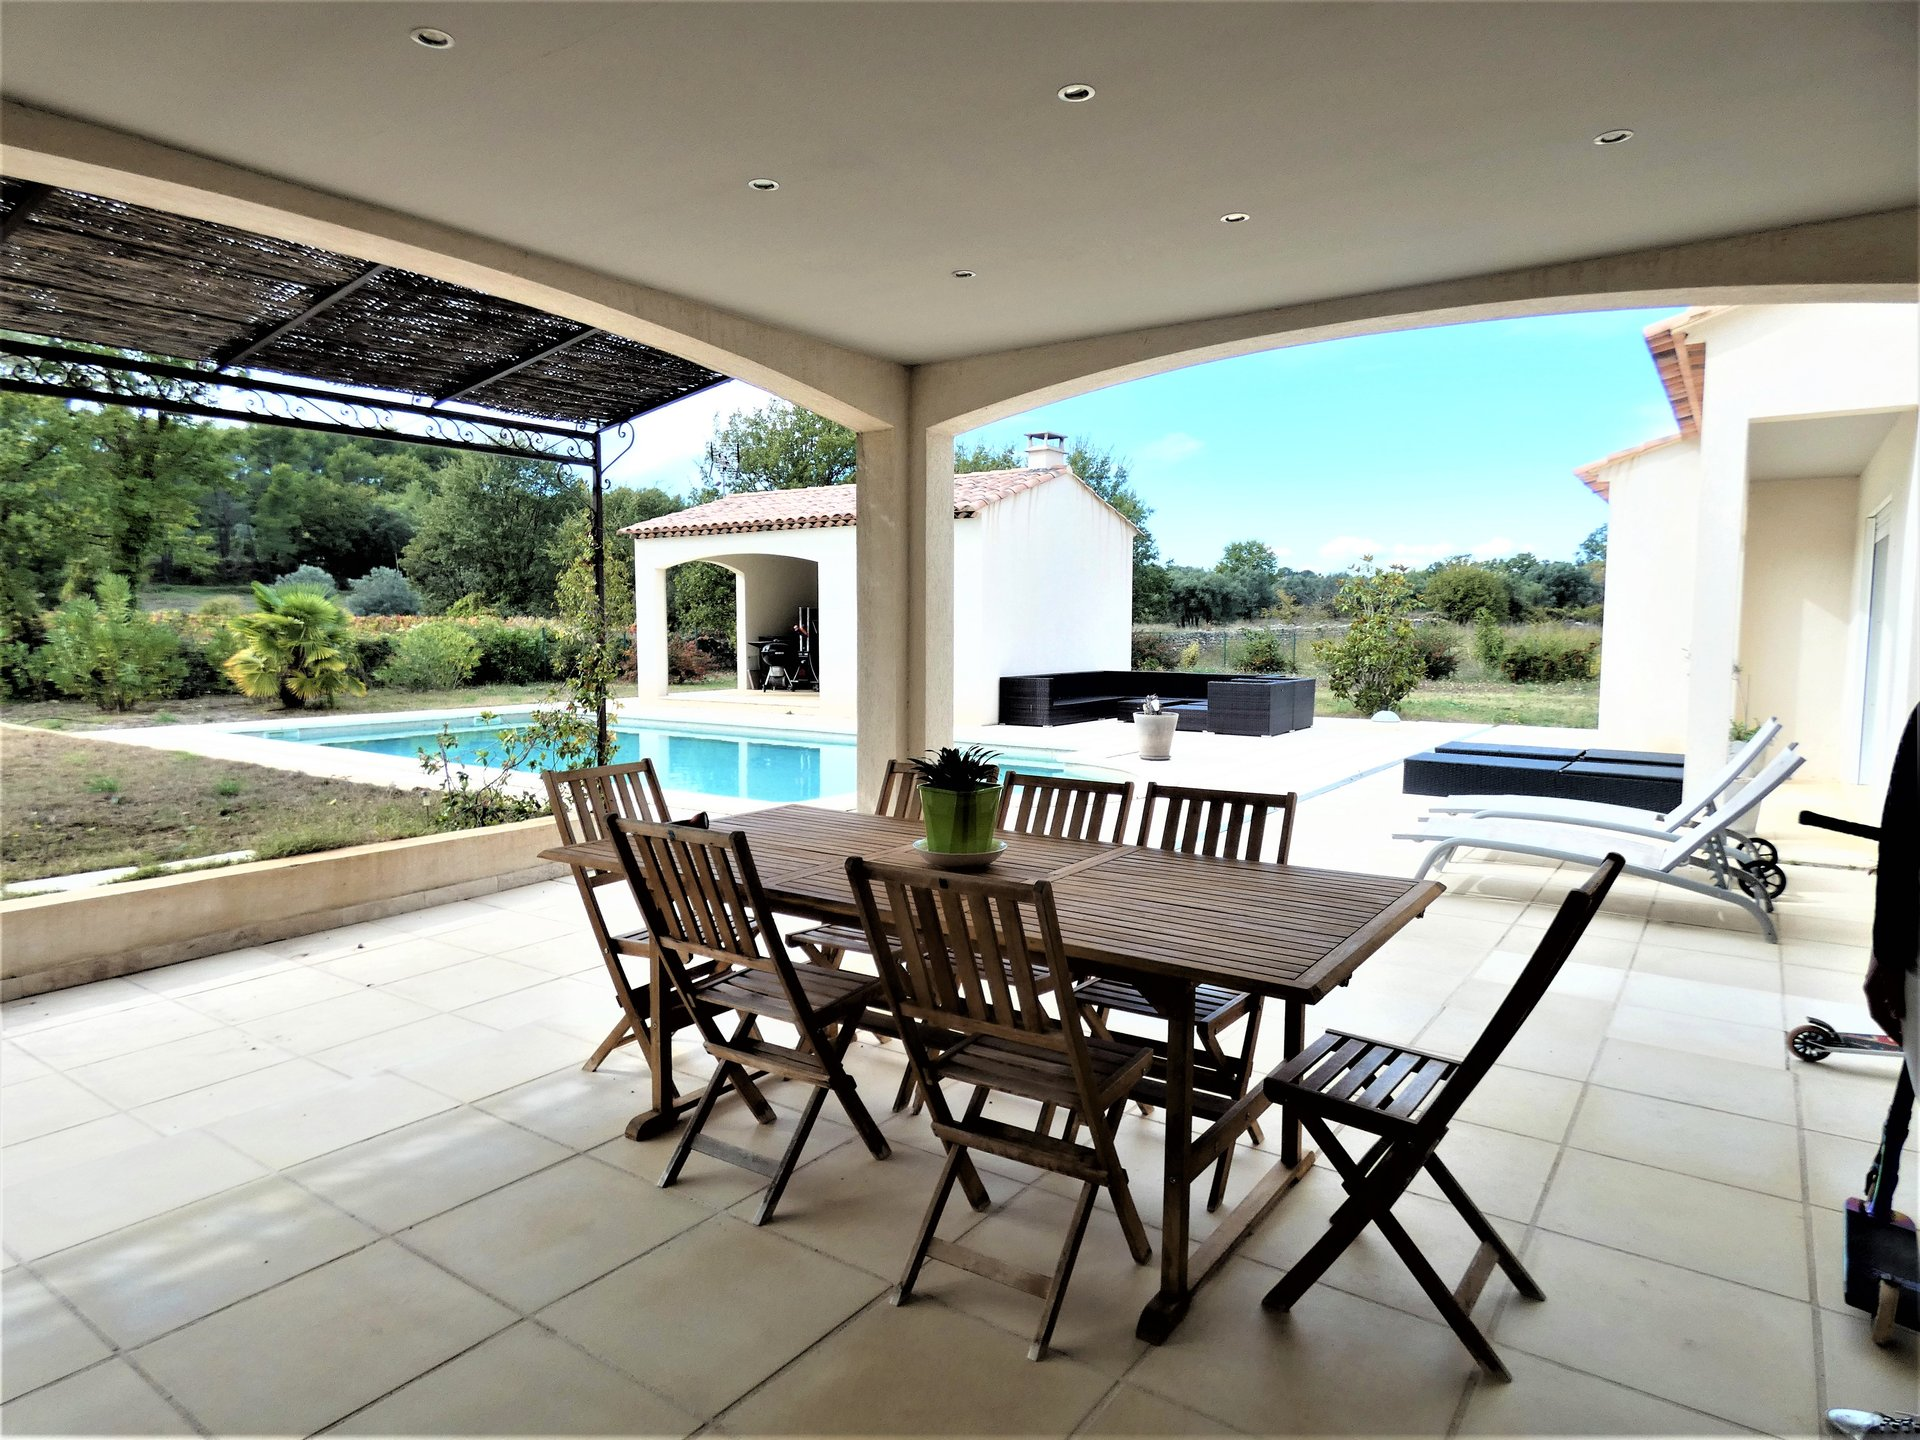 VILLA DRAGUIGNAN 193m2 on 4000 m2 OF LAND